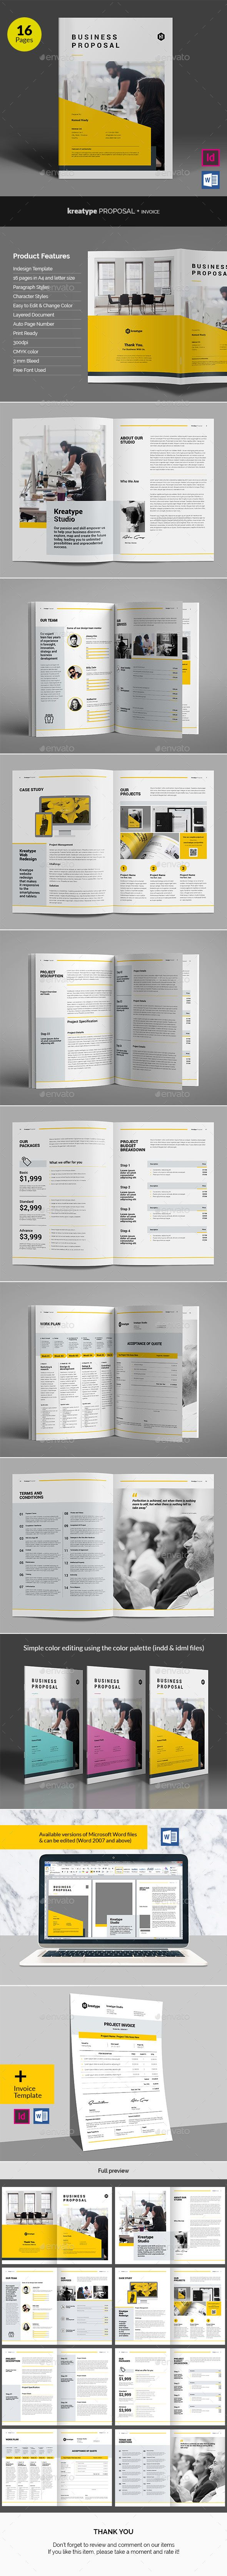 Kreatype business proposal v05 business proposal proposals and kreatype business proposal v05 wajeb Gallery